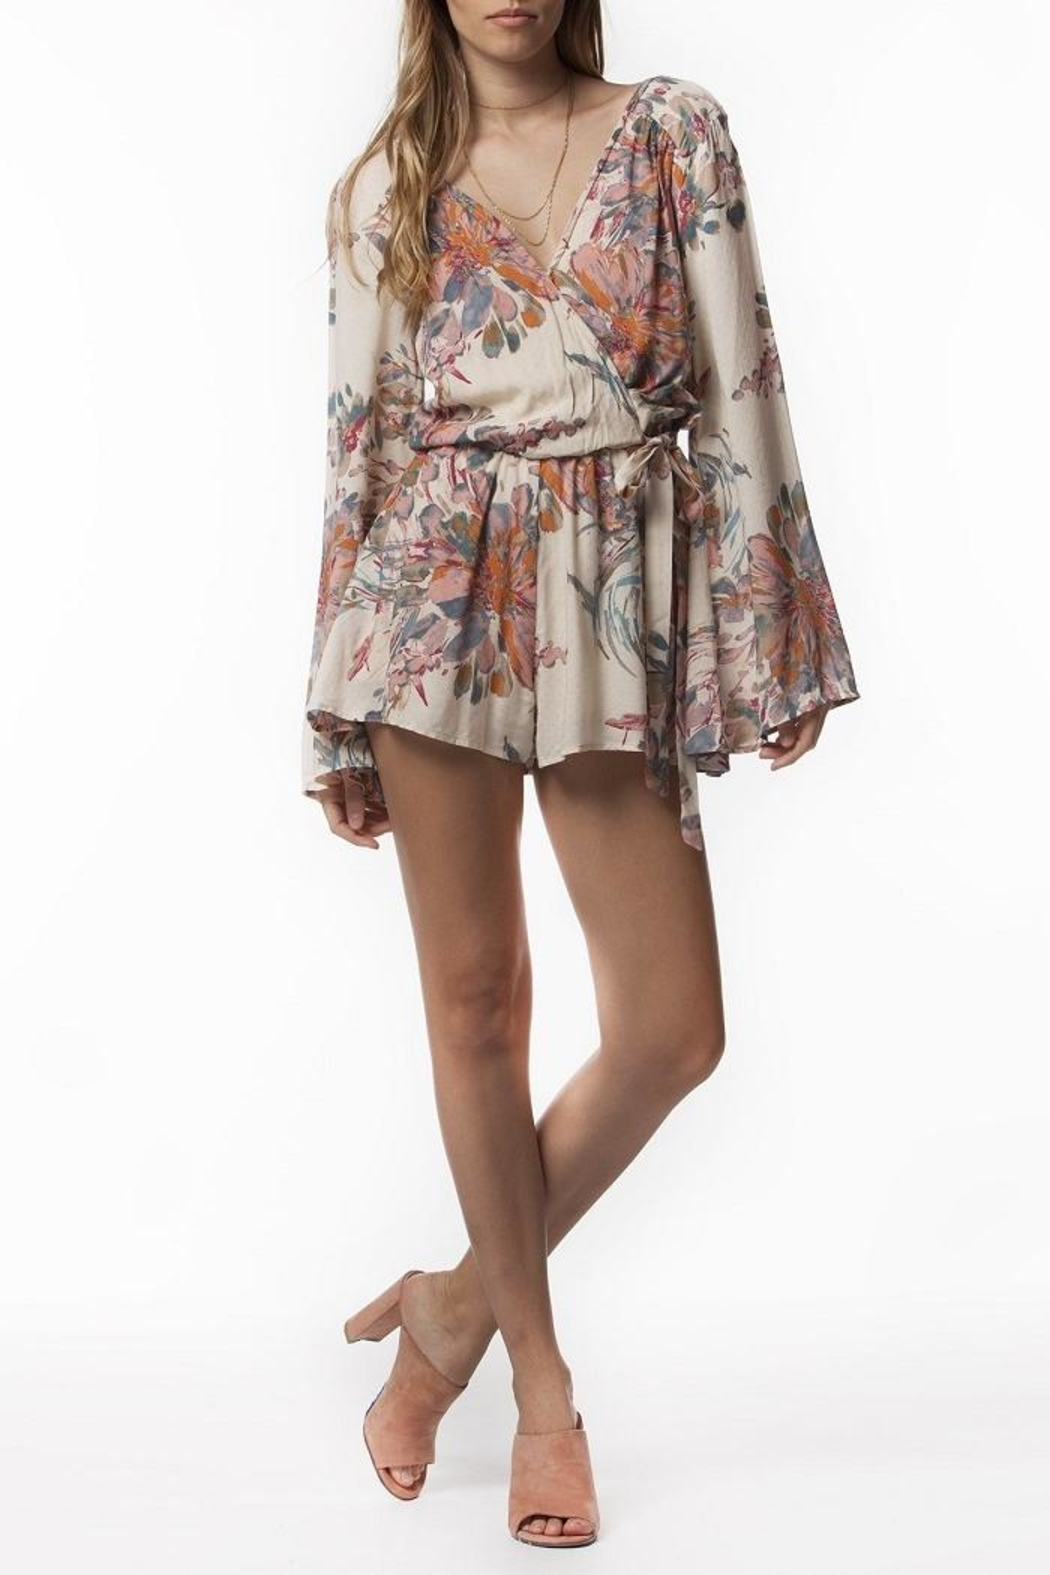 PPLA Floral Woven Romper - Side Cropped Image